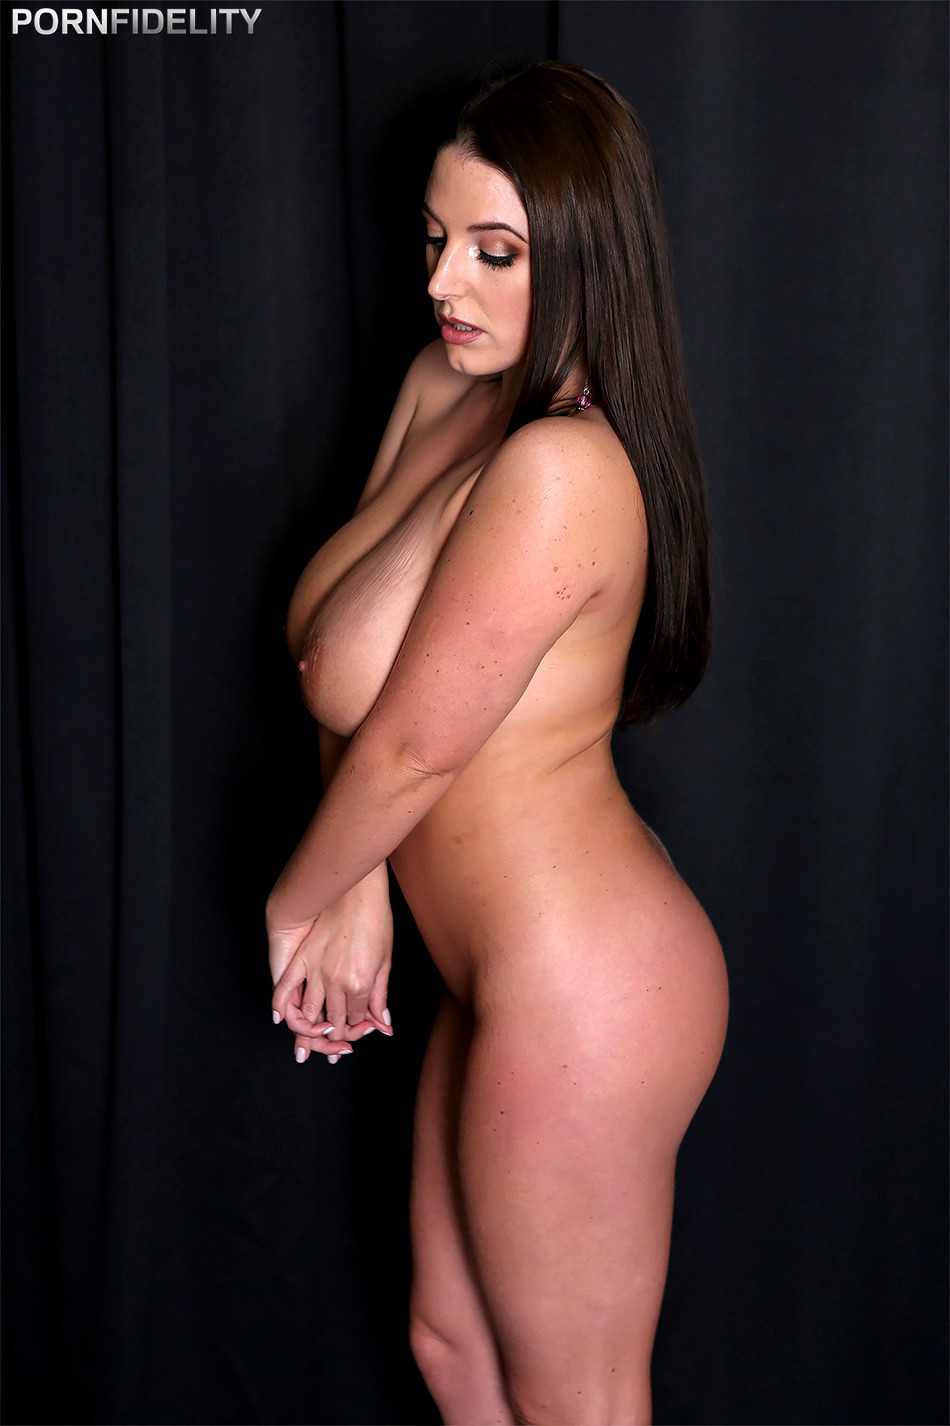 Ava taylor porn addicted not daughter - 1 part 3